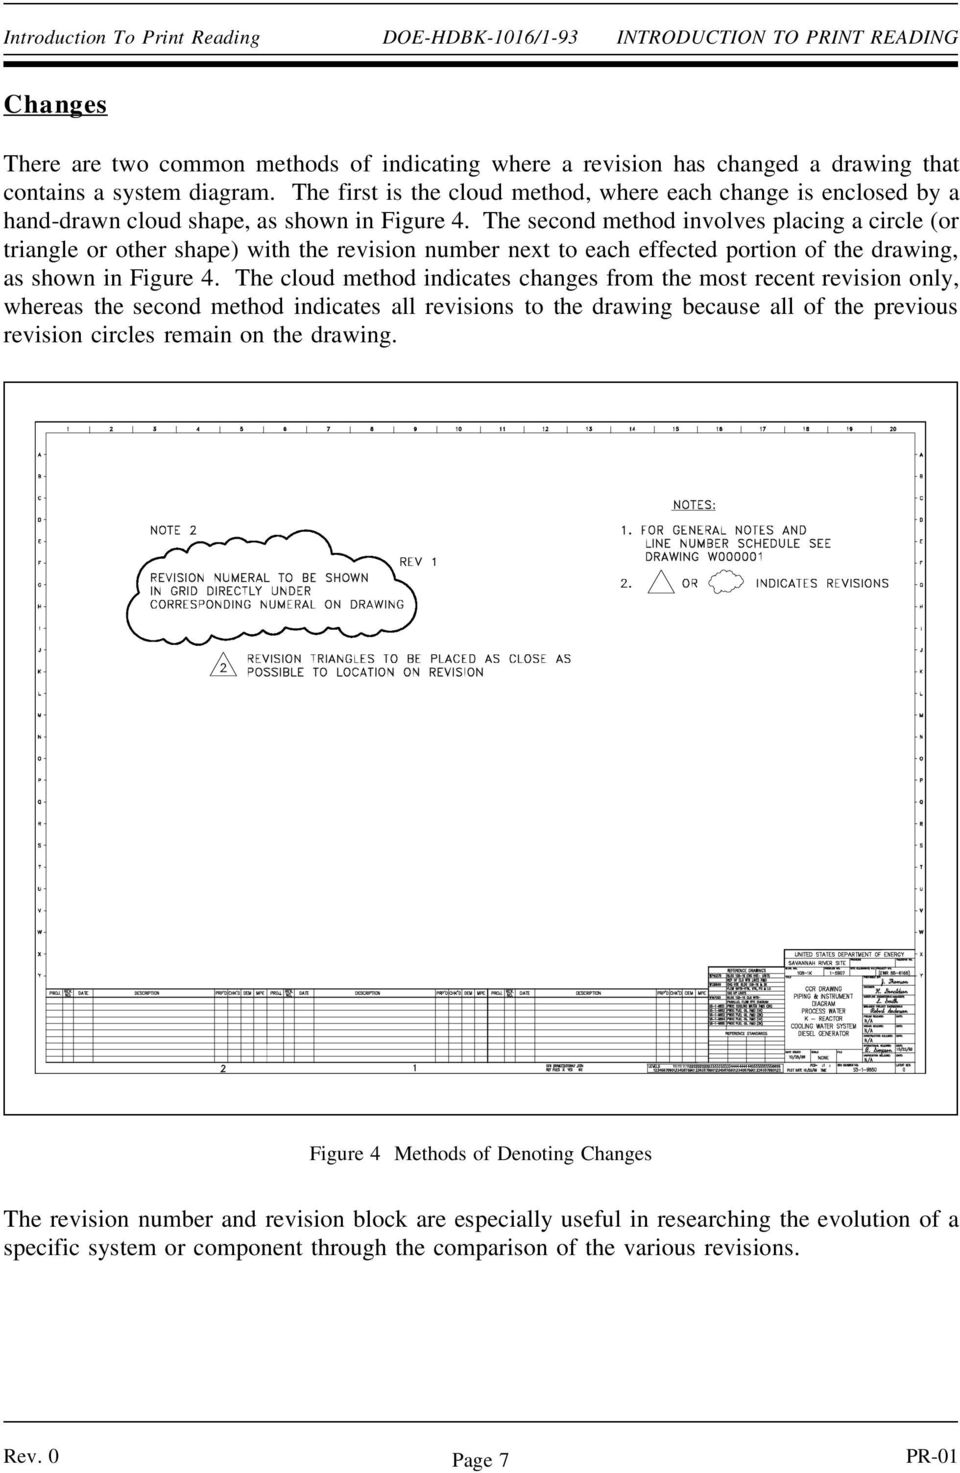 hight resolution of engineering drawings mechanical pdf doe hdbk 1016 1 93 electrical diagrams and schematics electrical